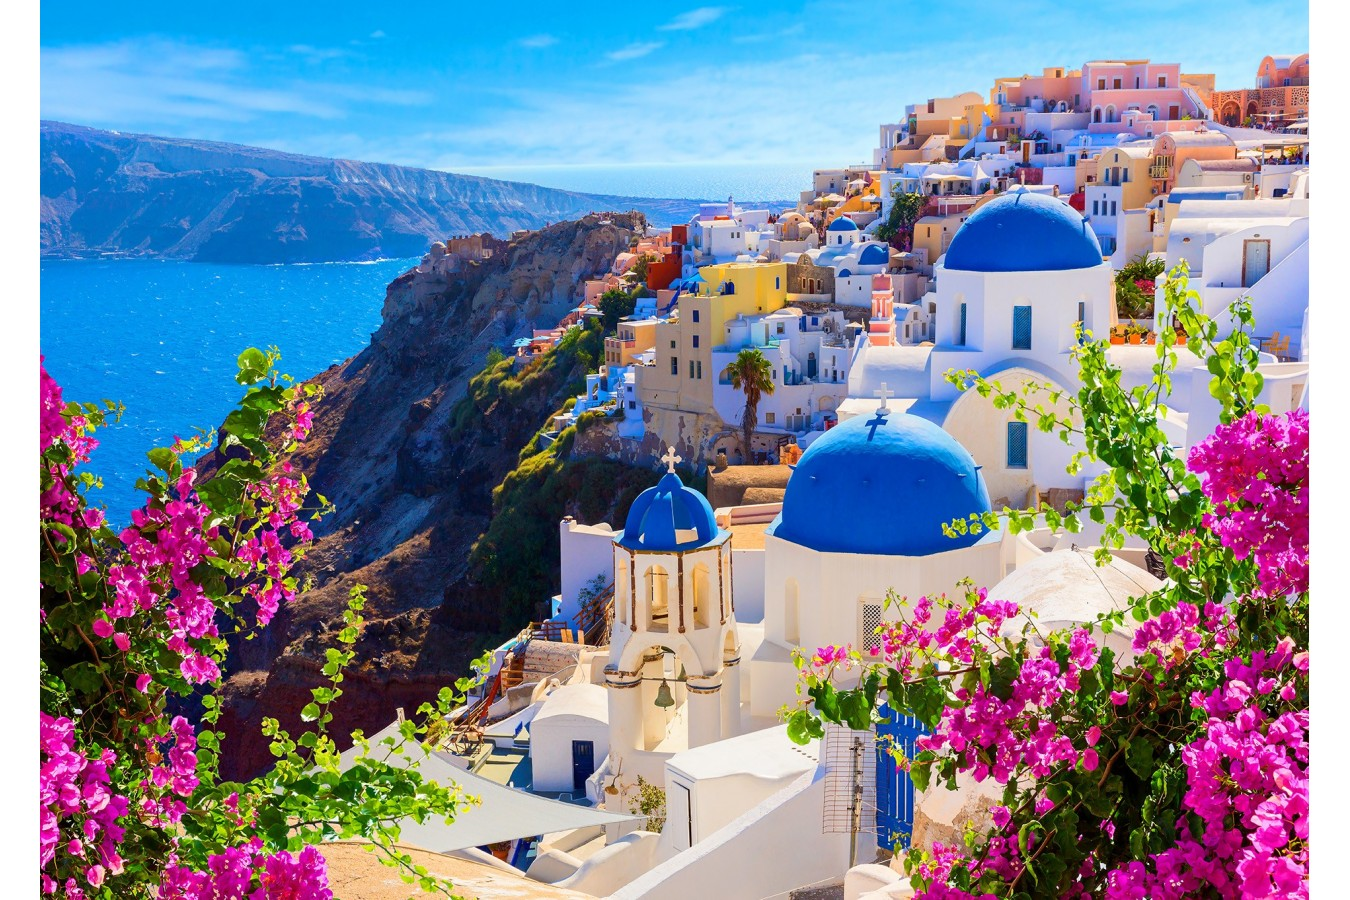 Puzzle 1000 piese - Santorini View with Flowers, Greece (Enjoy-1083)